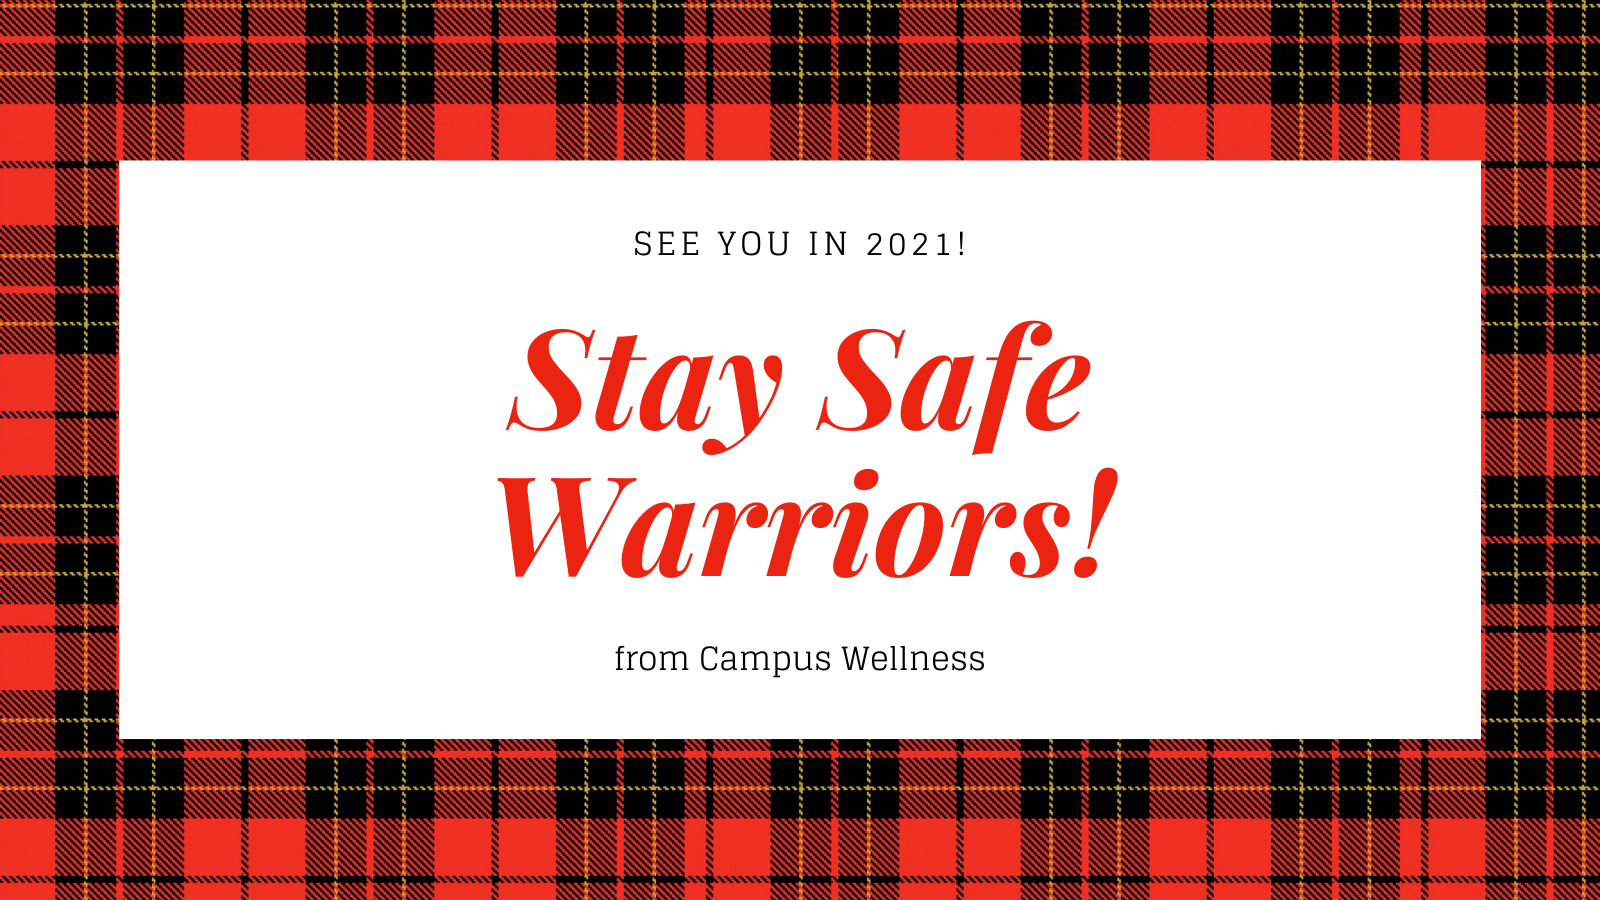 Stay Safe Warriors! See you in 2021